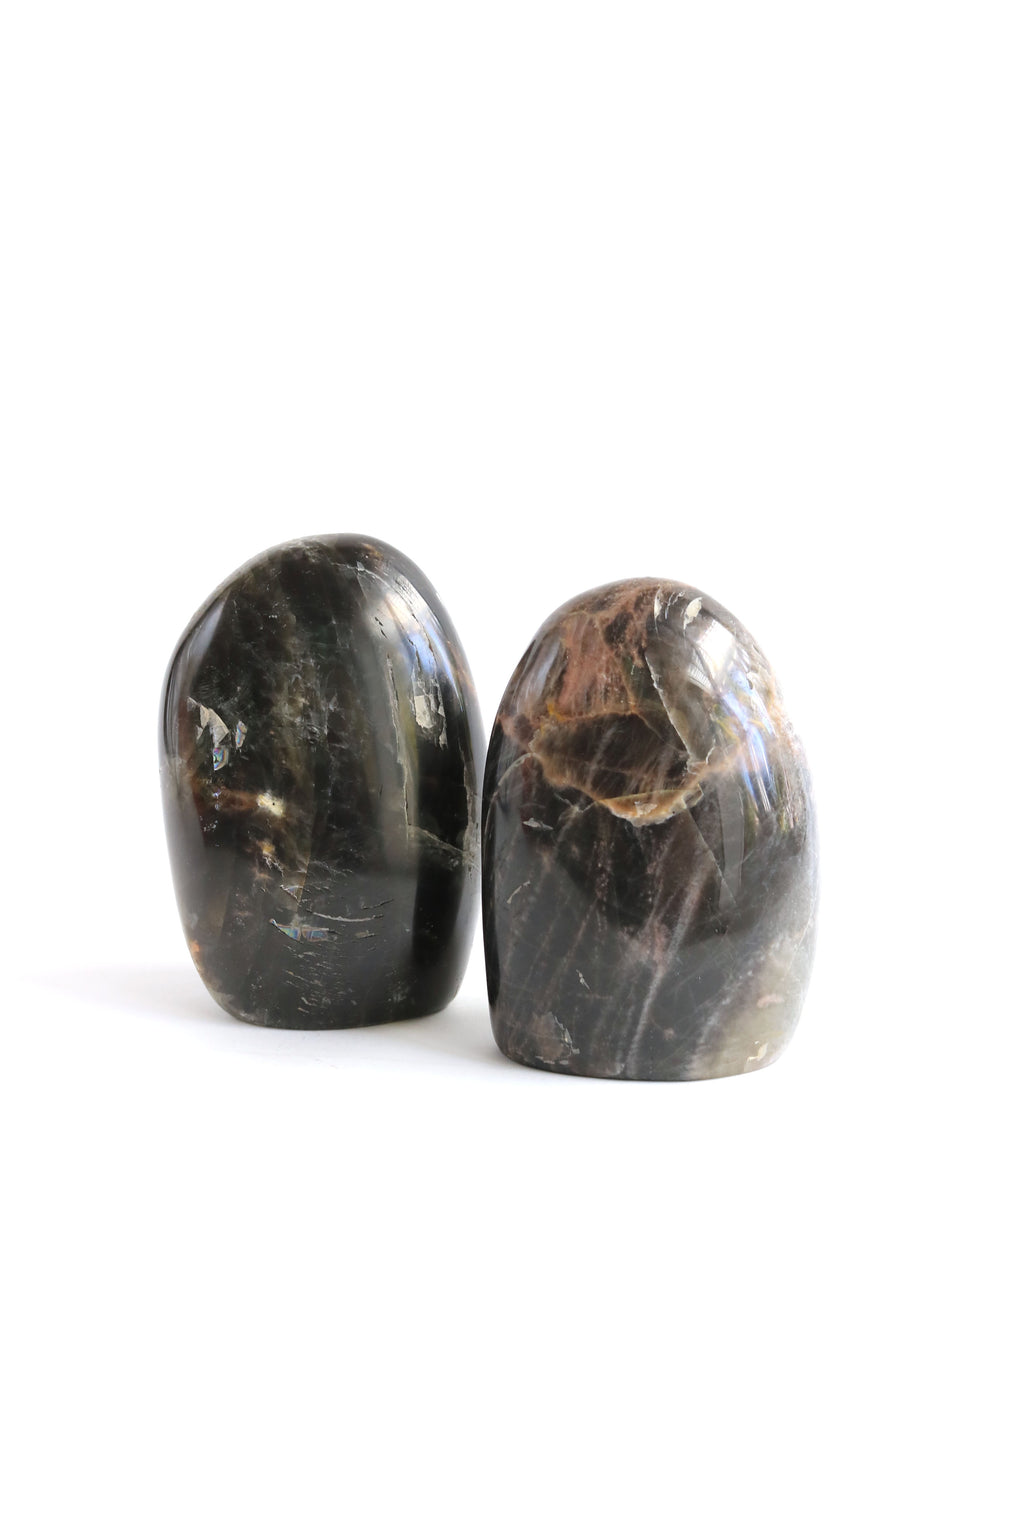 Black Moonstone Polished Specimen